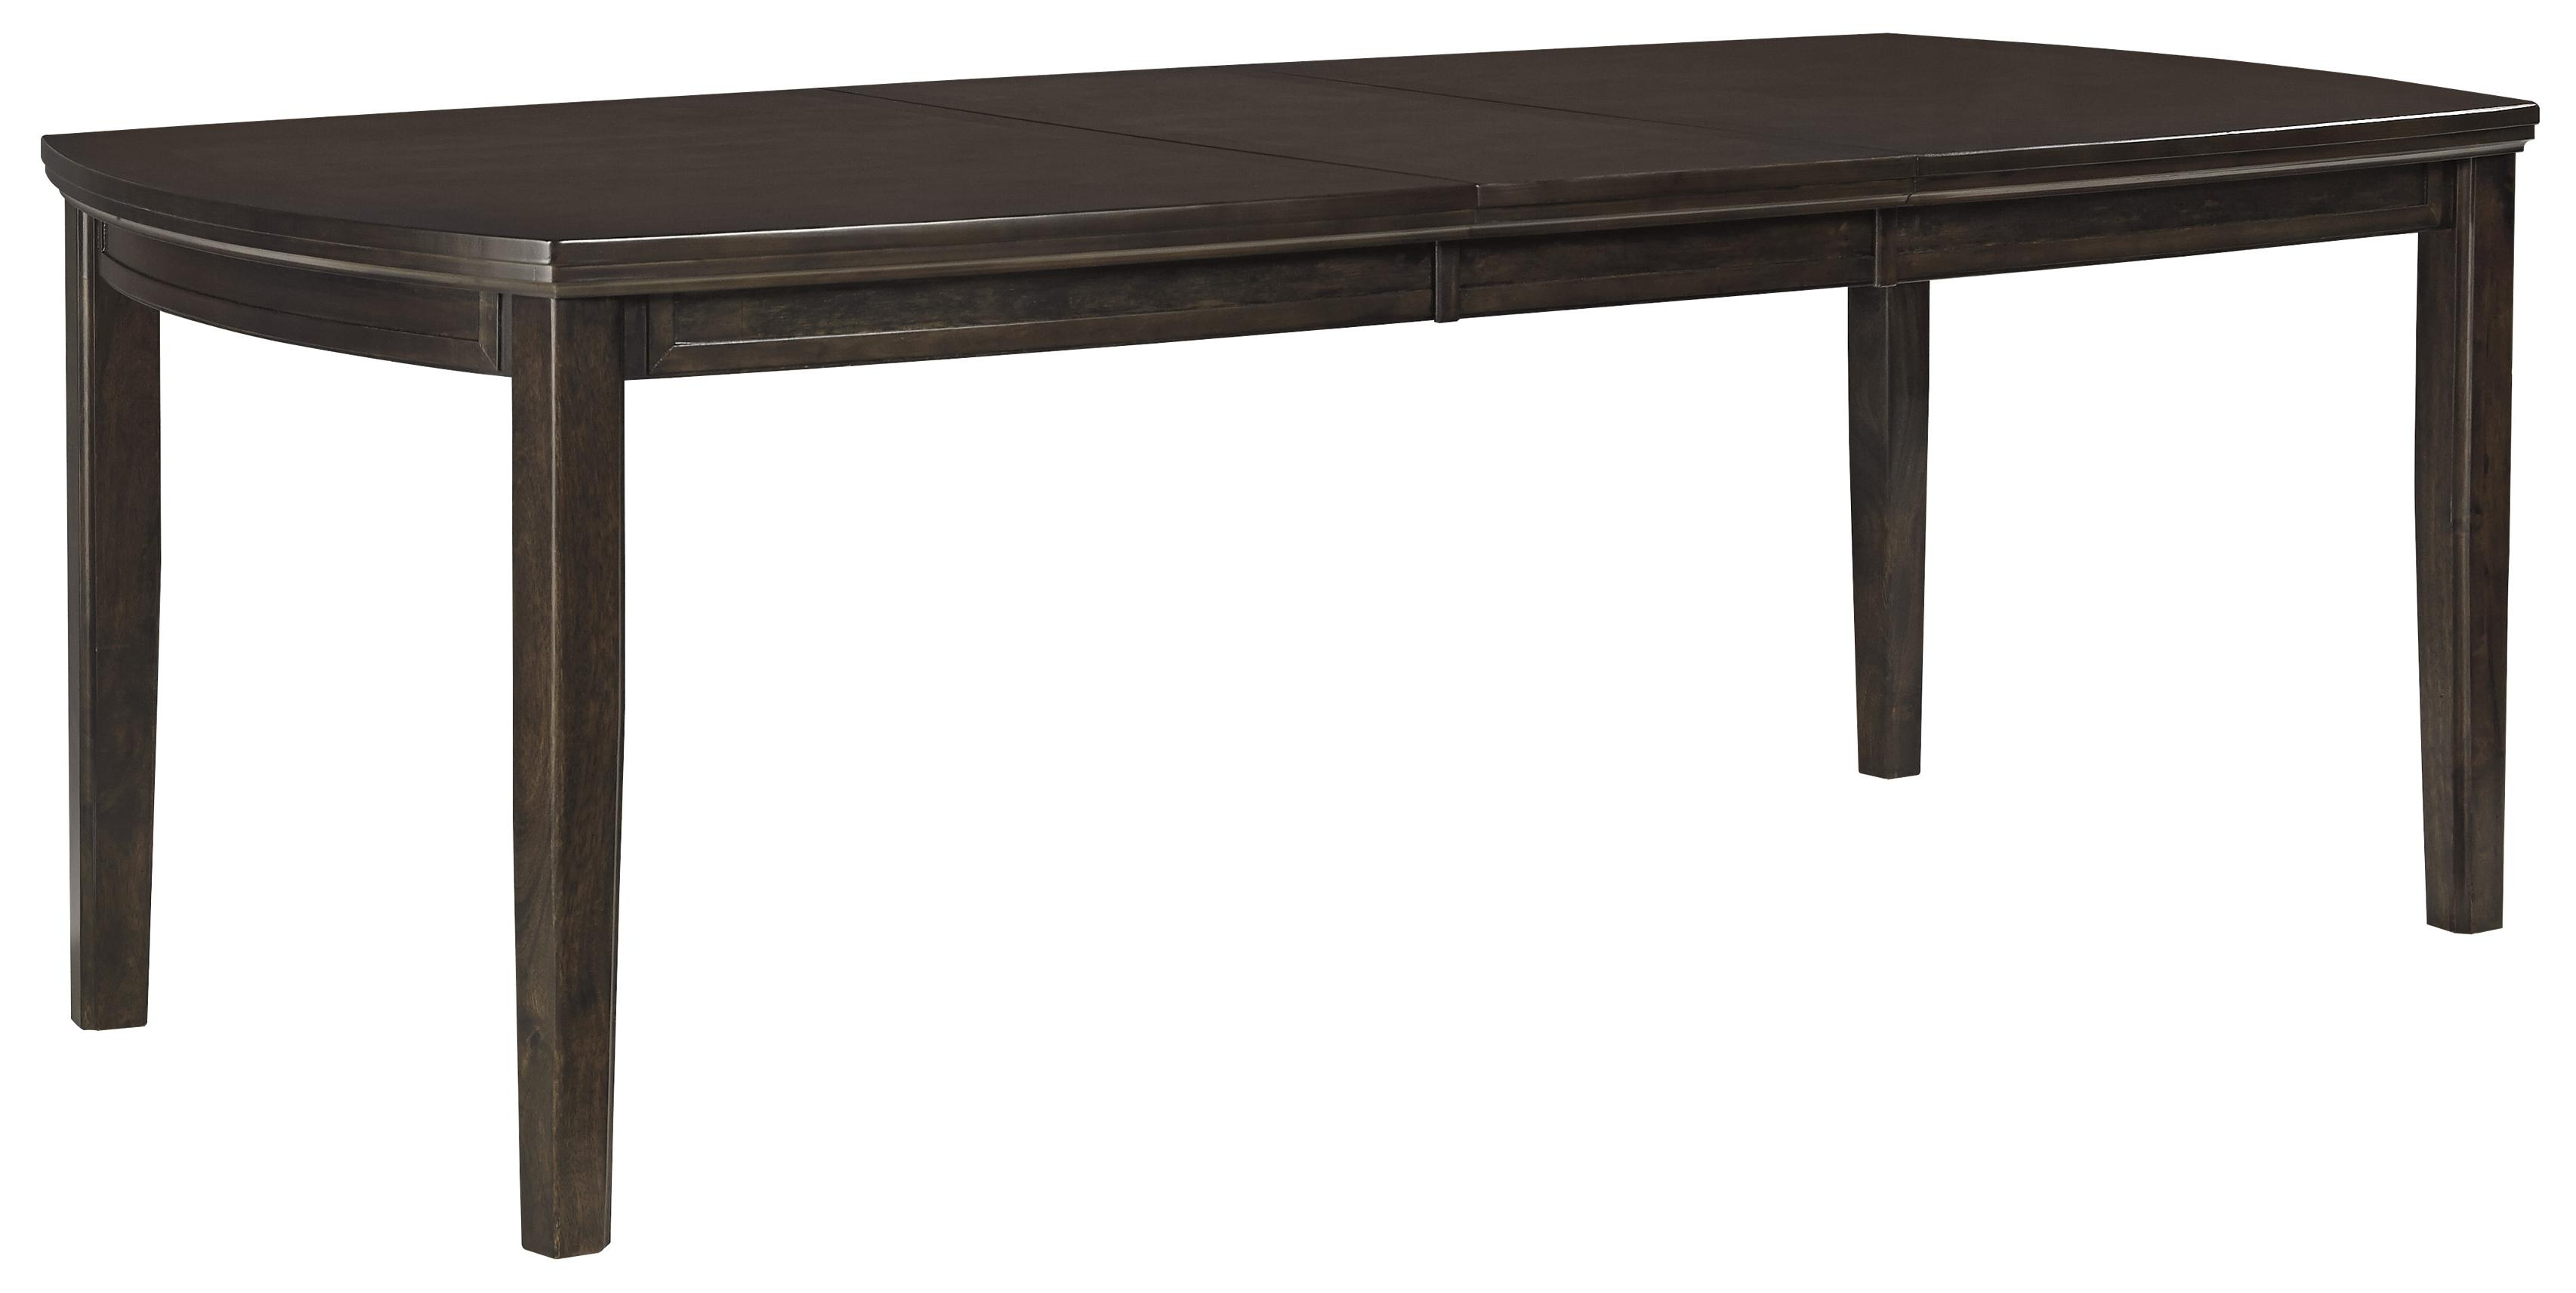 Lanquist Rectangular Dining Room Extension Table at Van Hill Furniture